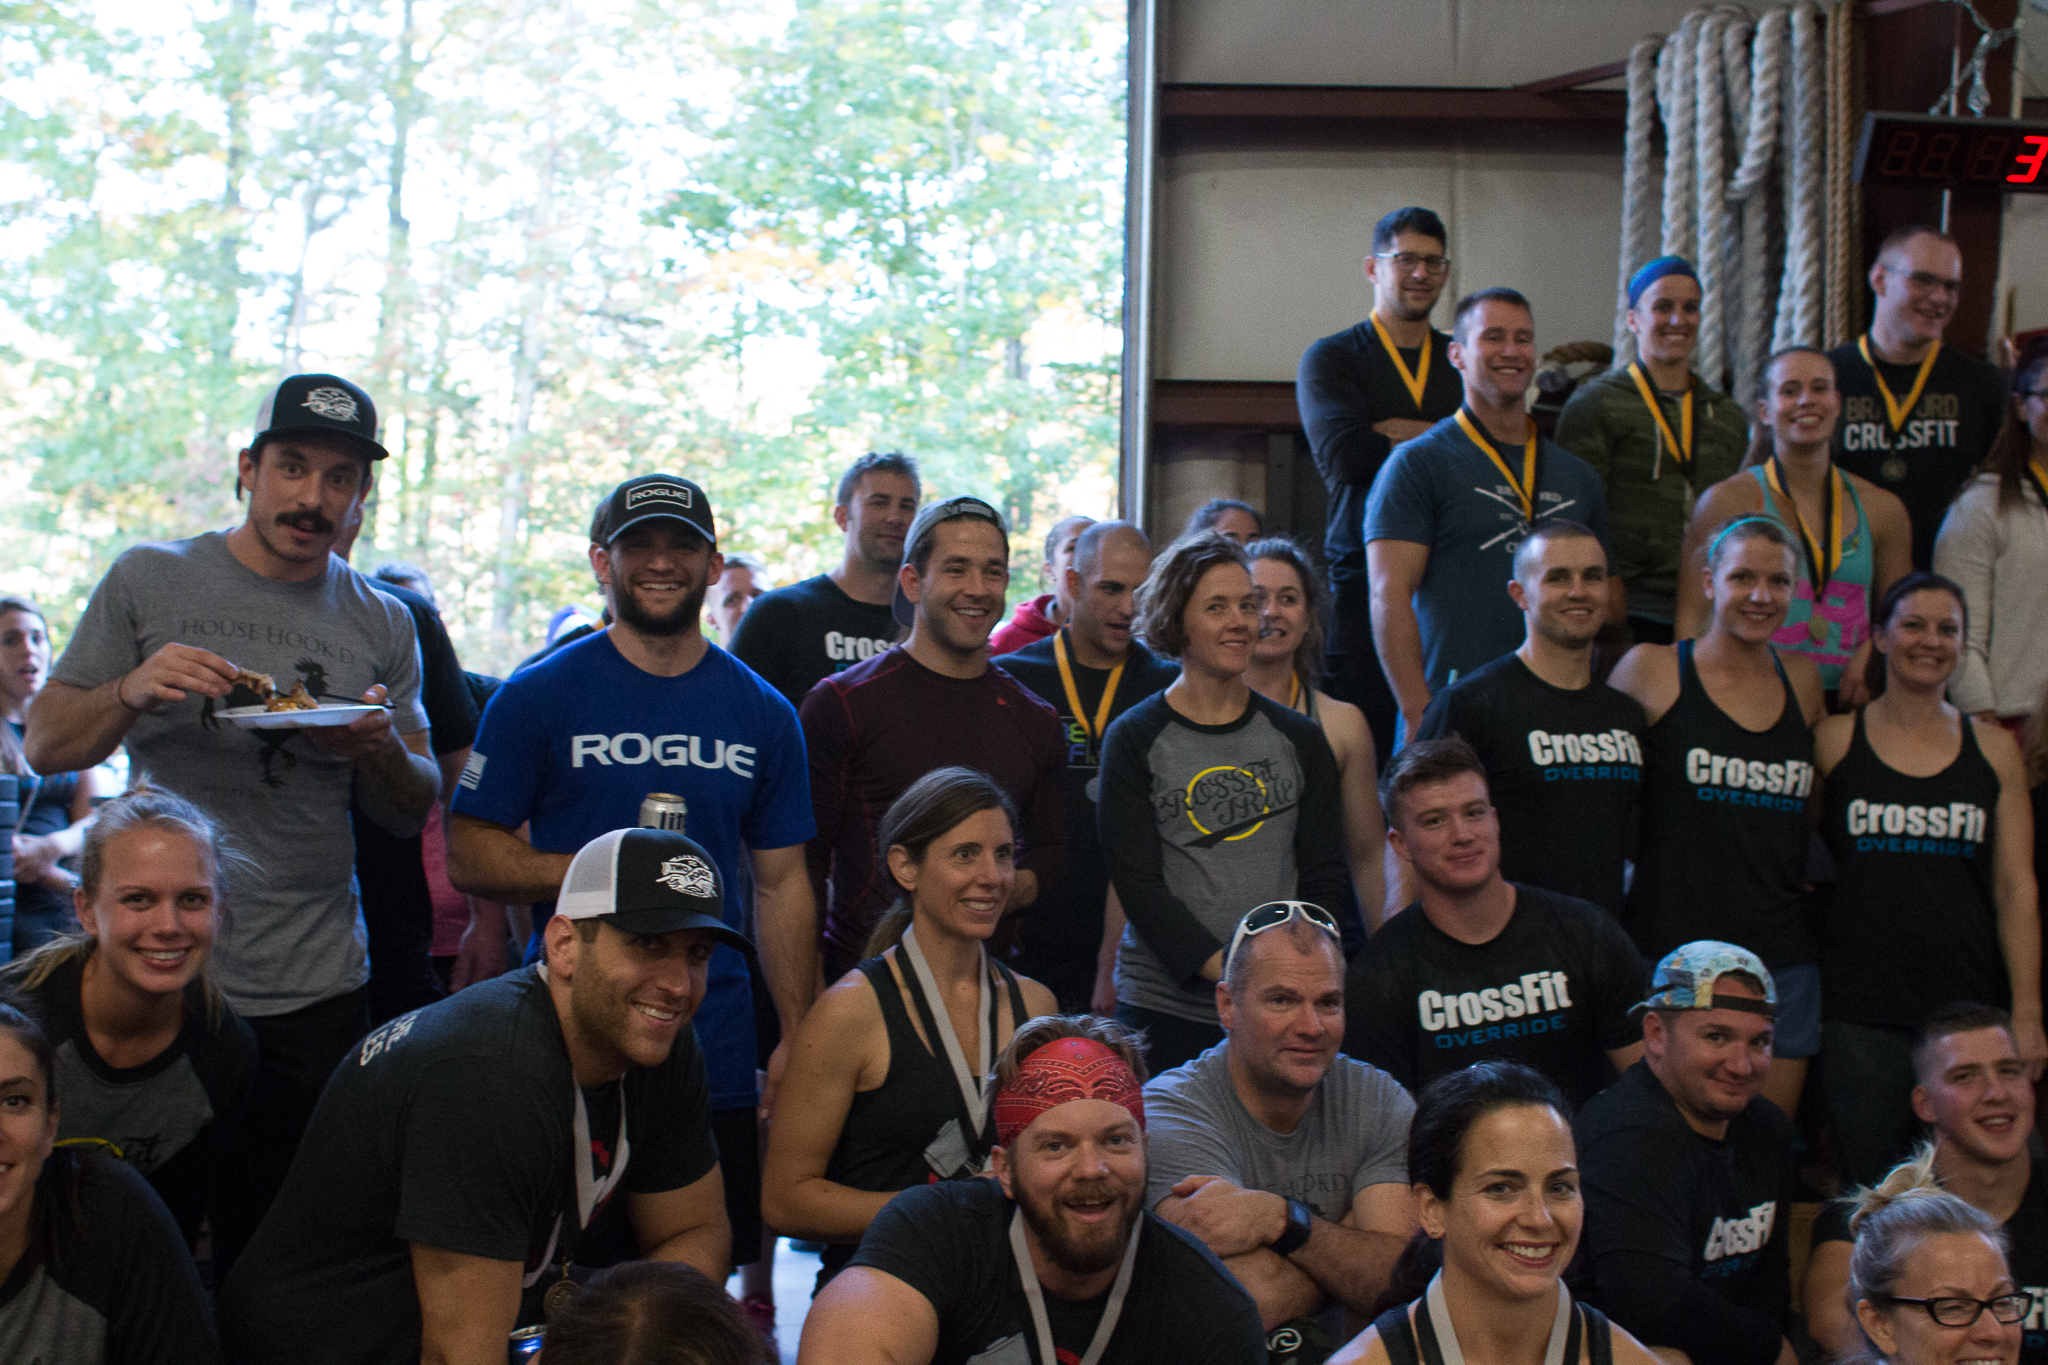 battle-for-bell-crossfit-strongtown-everyday-lifters (6 of 6).jpg